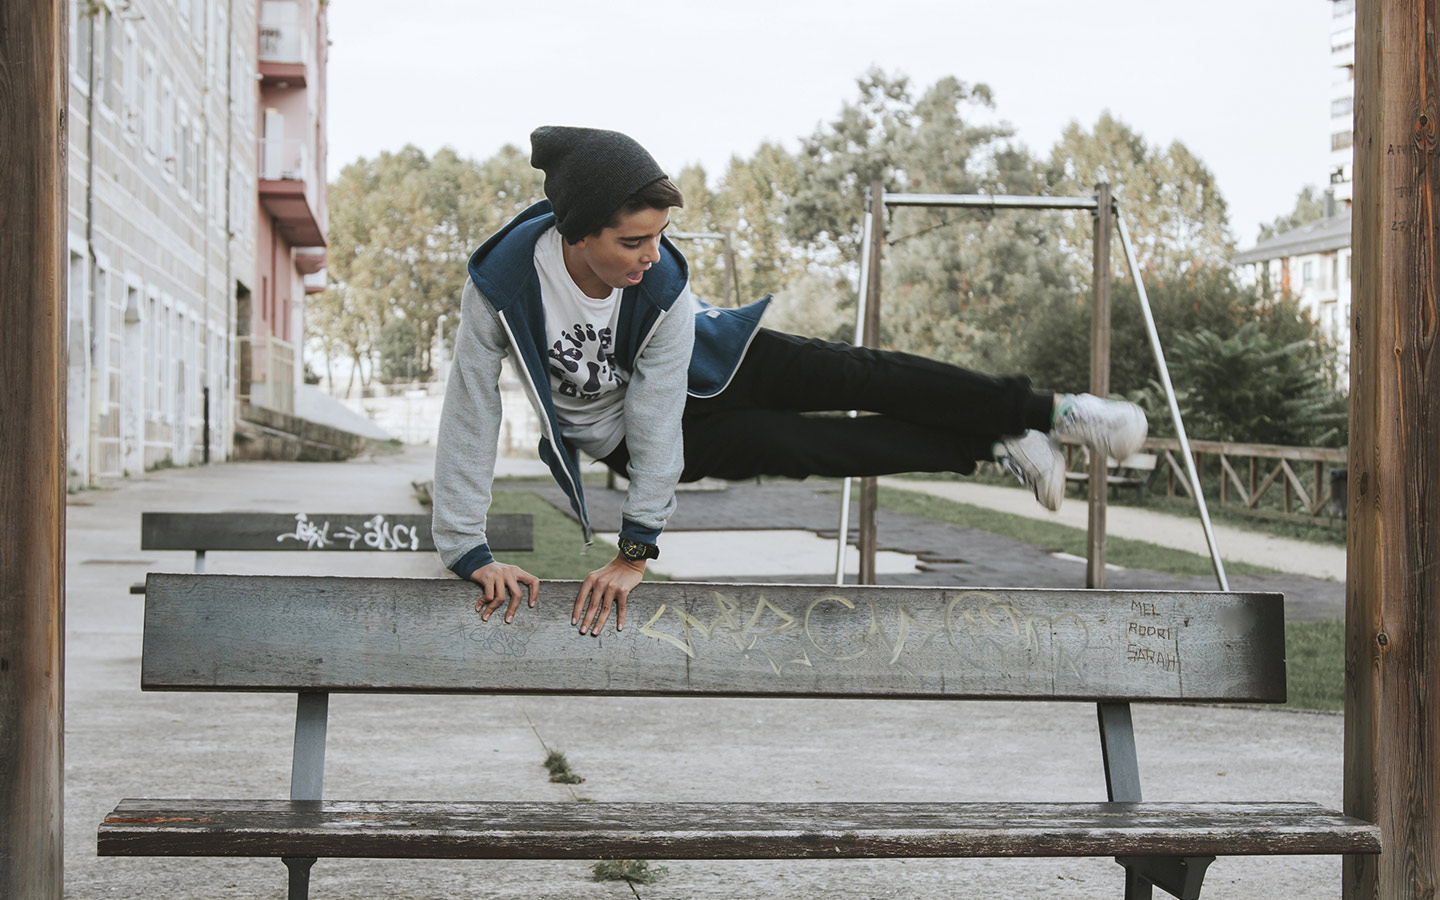 Parkour is another way to keep fit in Dubai